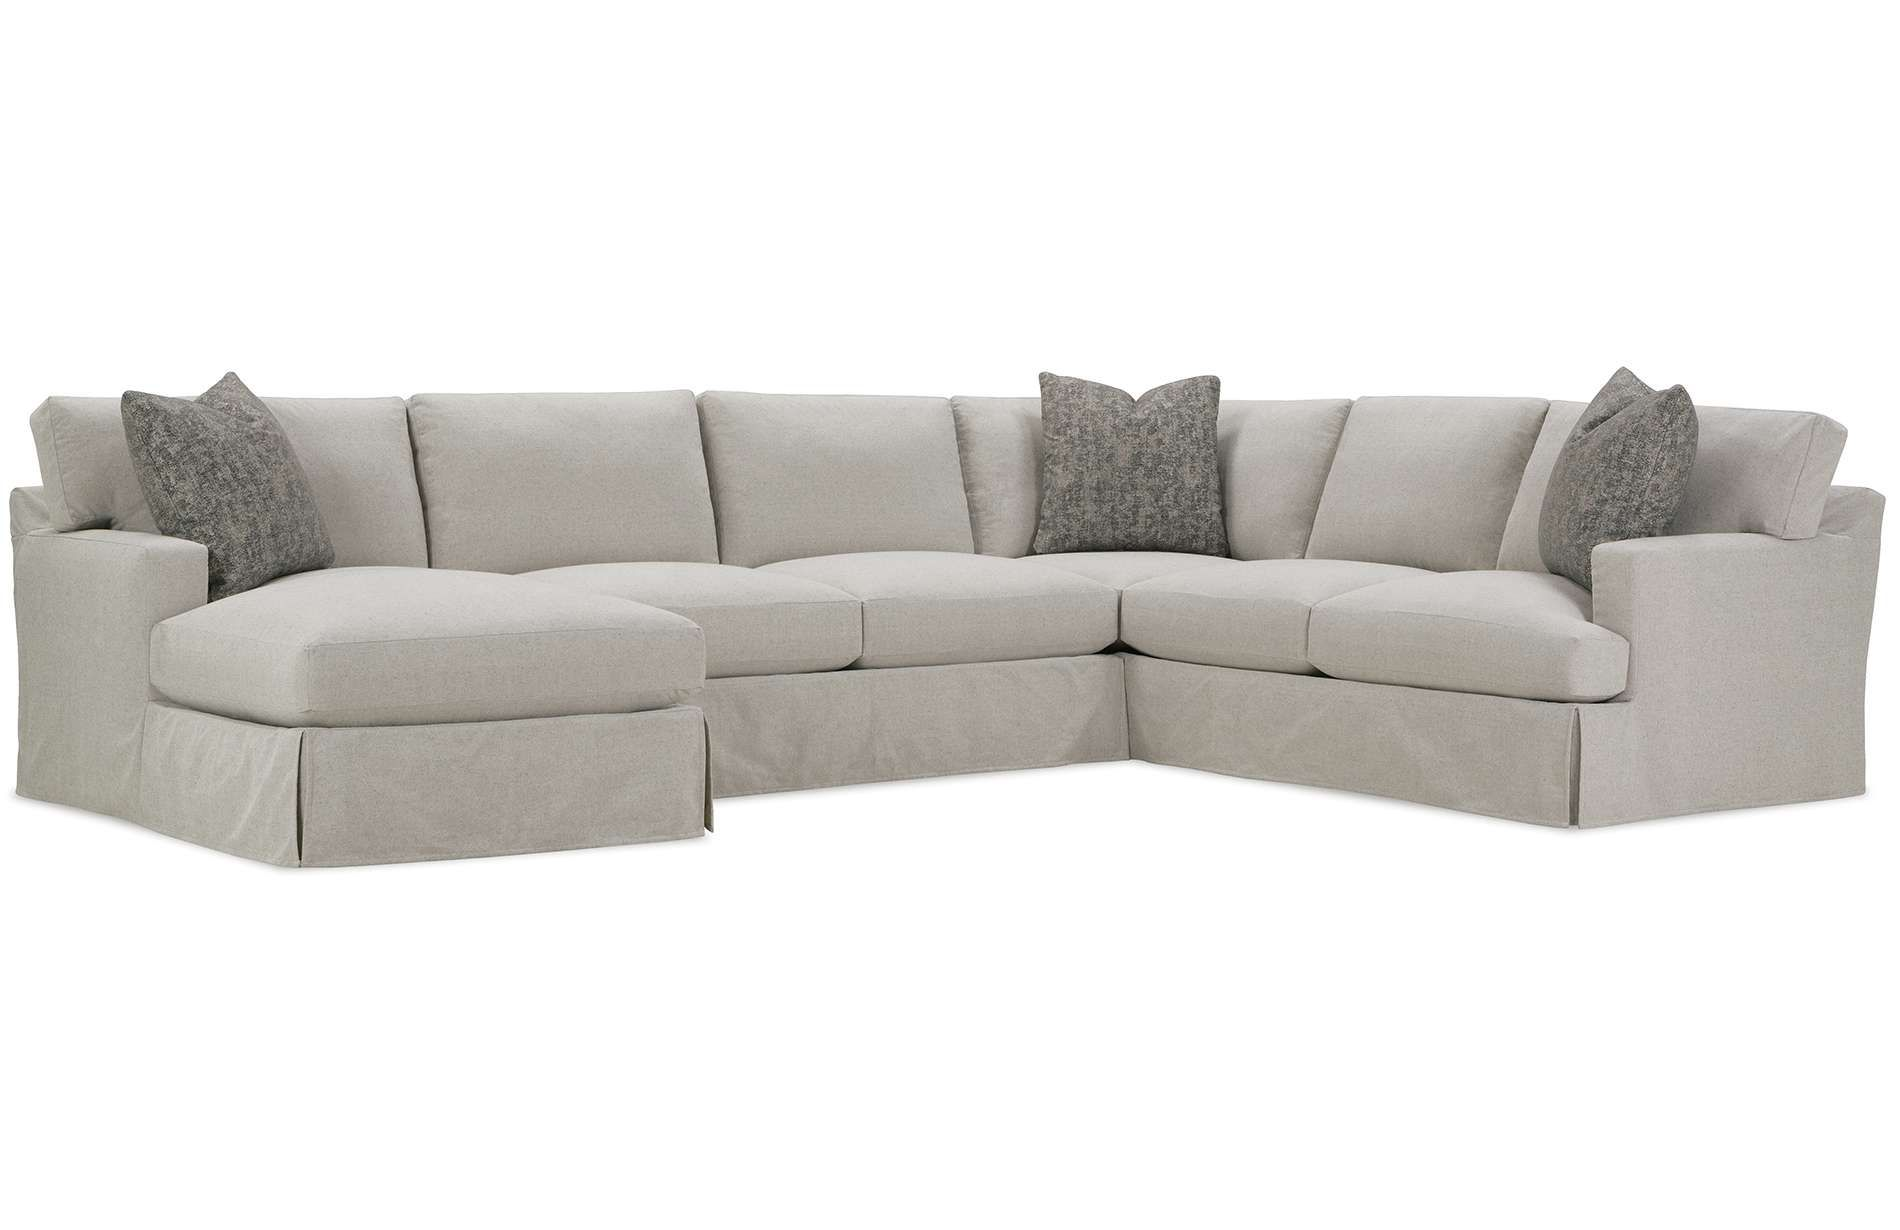 Rowe Grayson Slipcovered Sectional Two